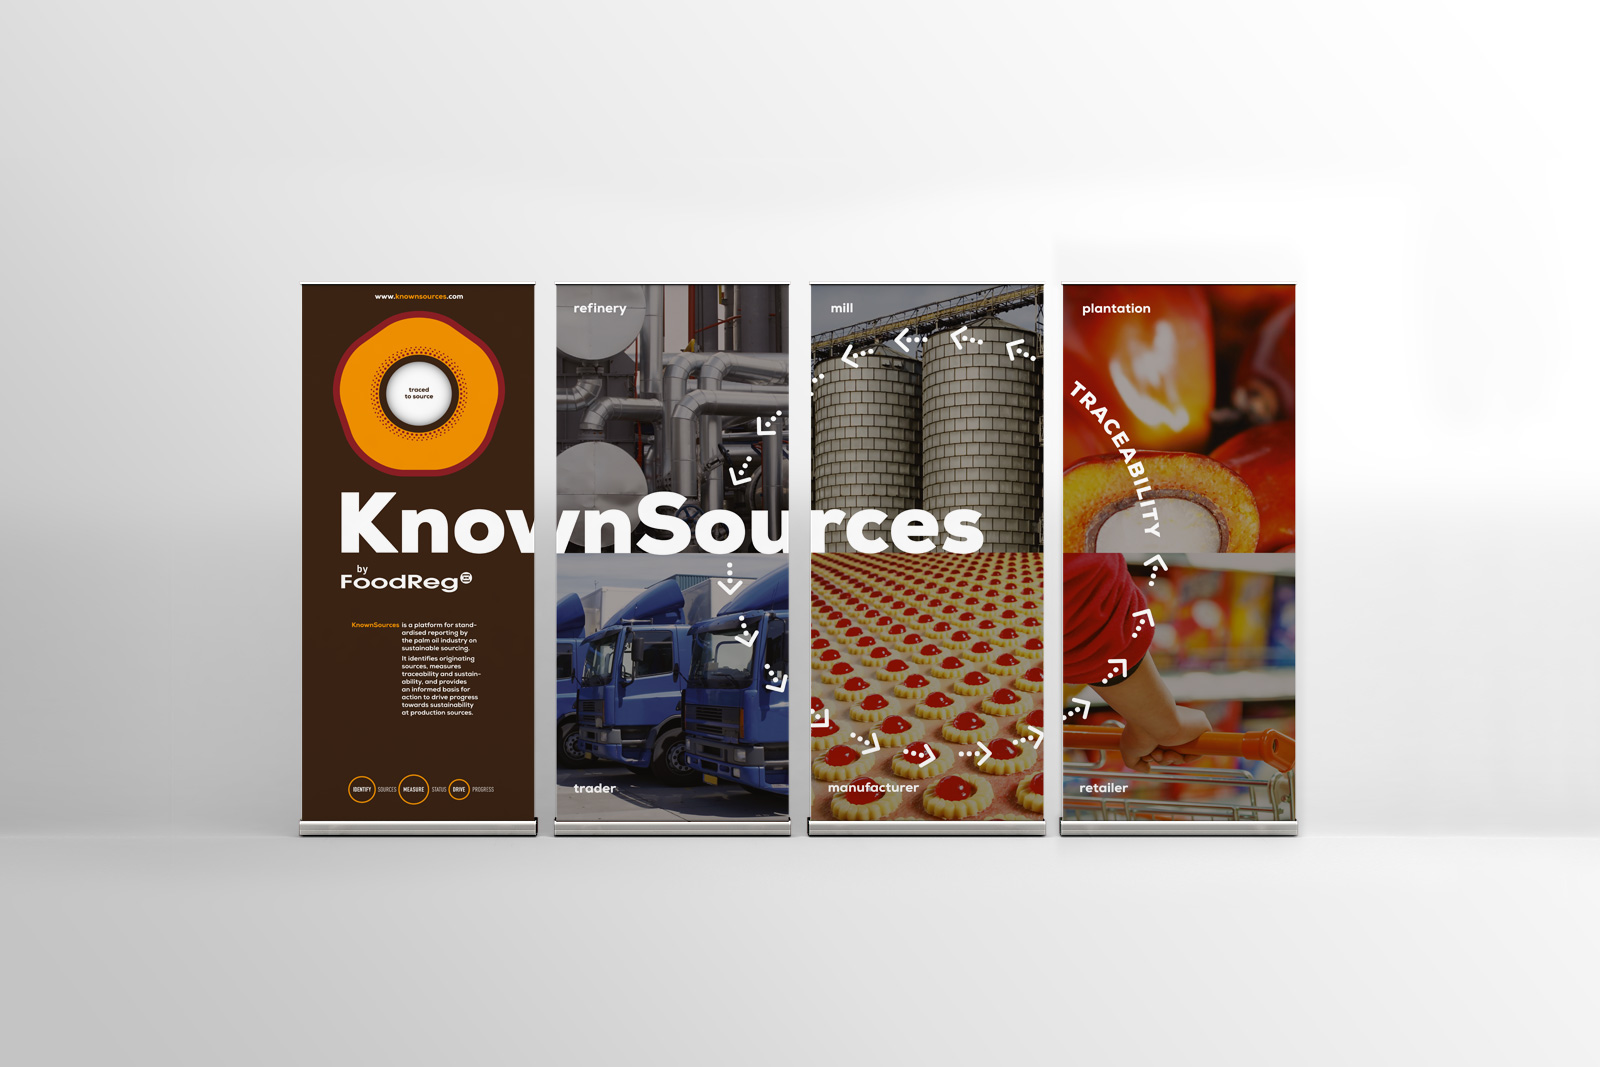 knownsources buntings